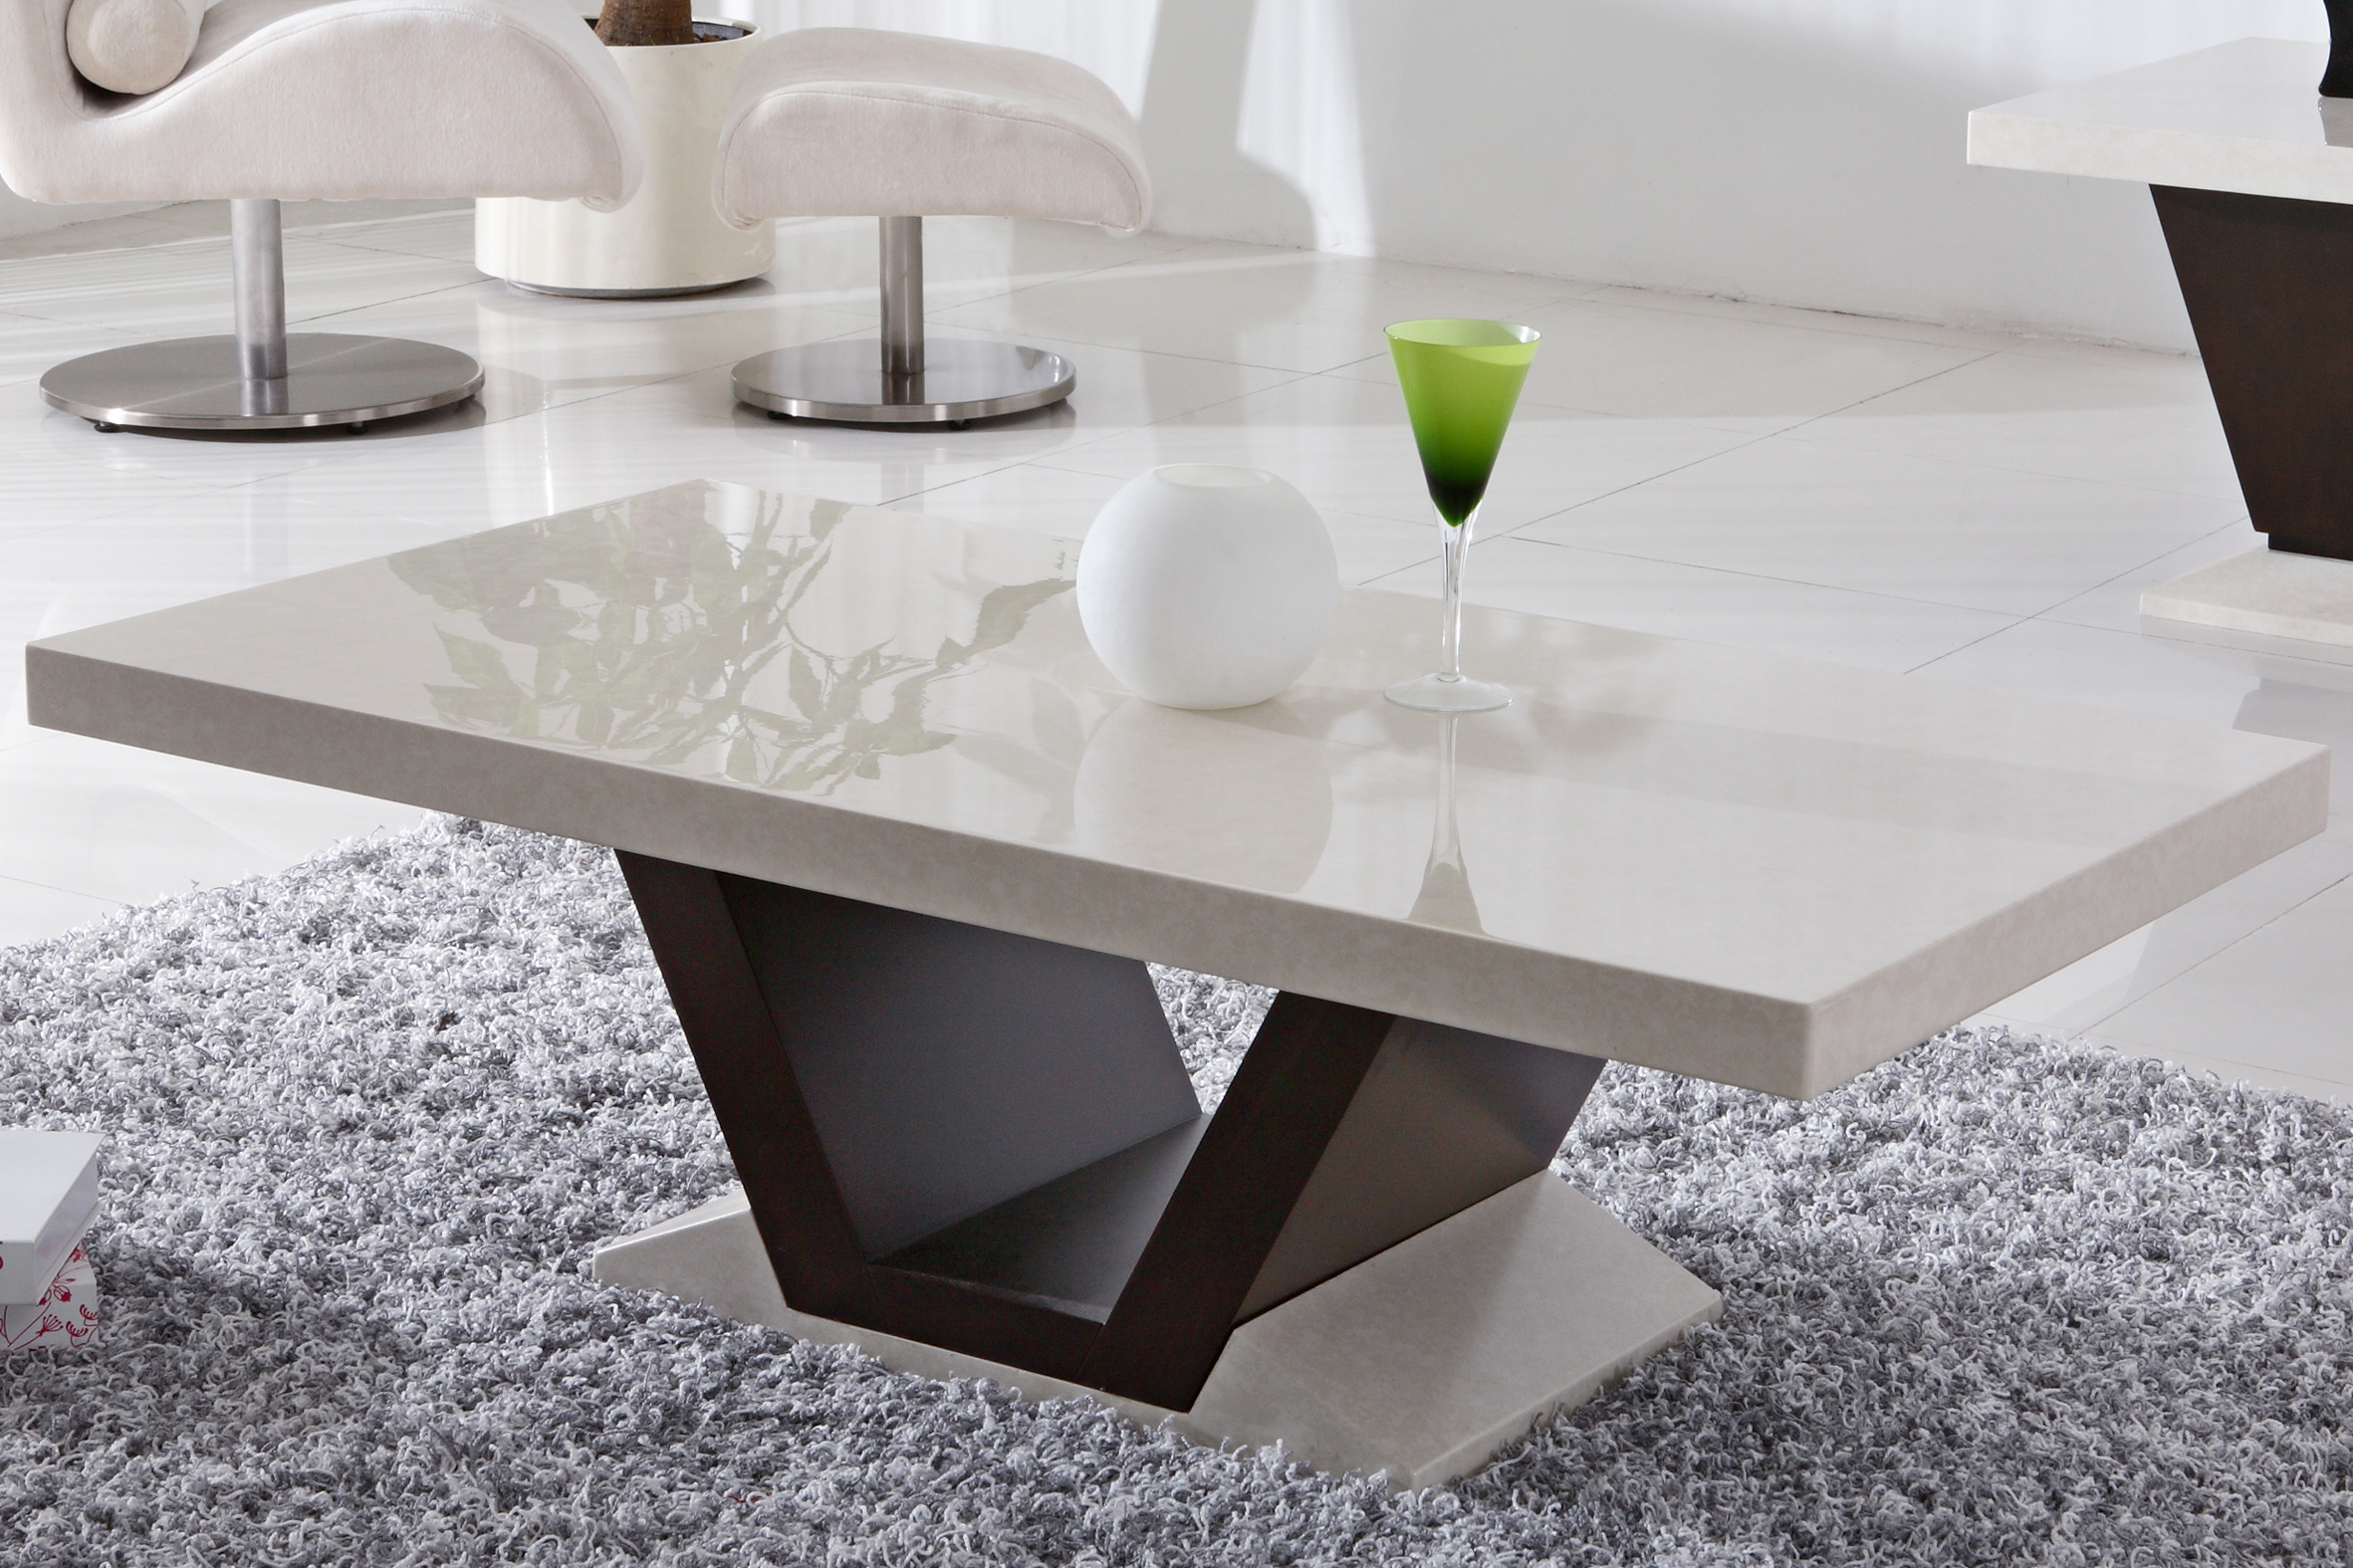 real italian marble coffee tables for dining top accent glasses green luxury themes great amazing carpet stone table target sofa modern living room furniture sets concrete dinner